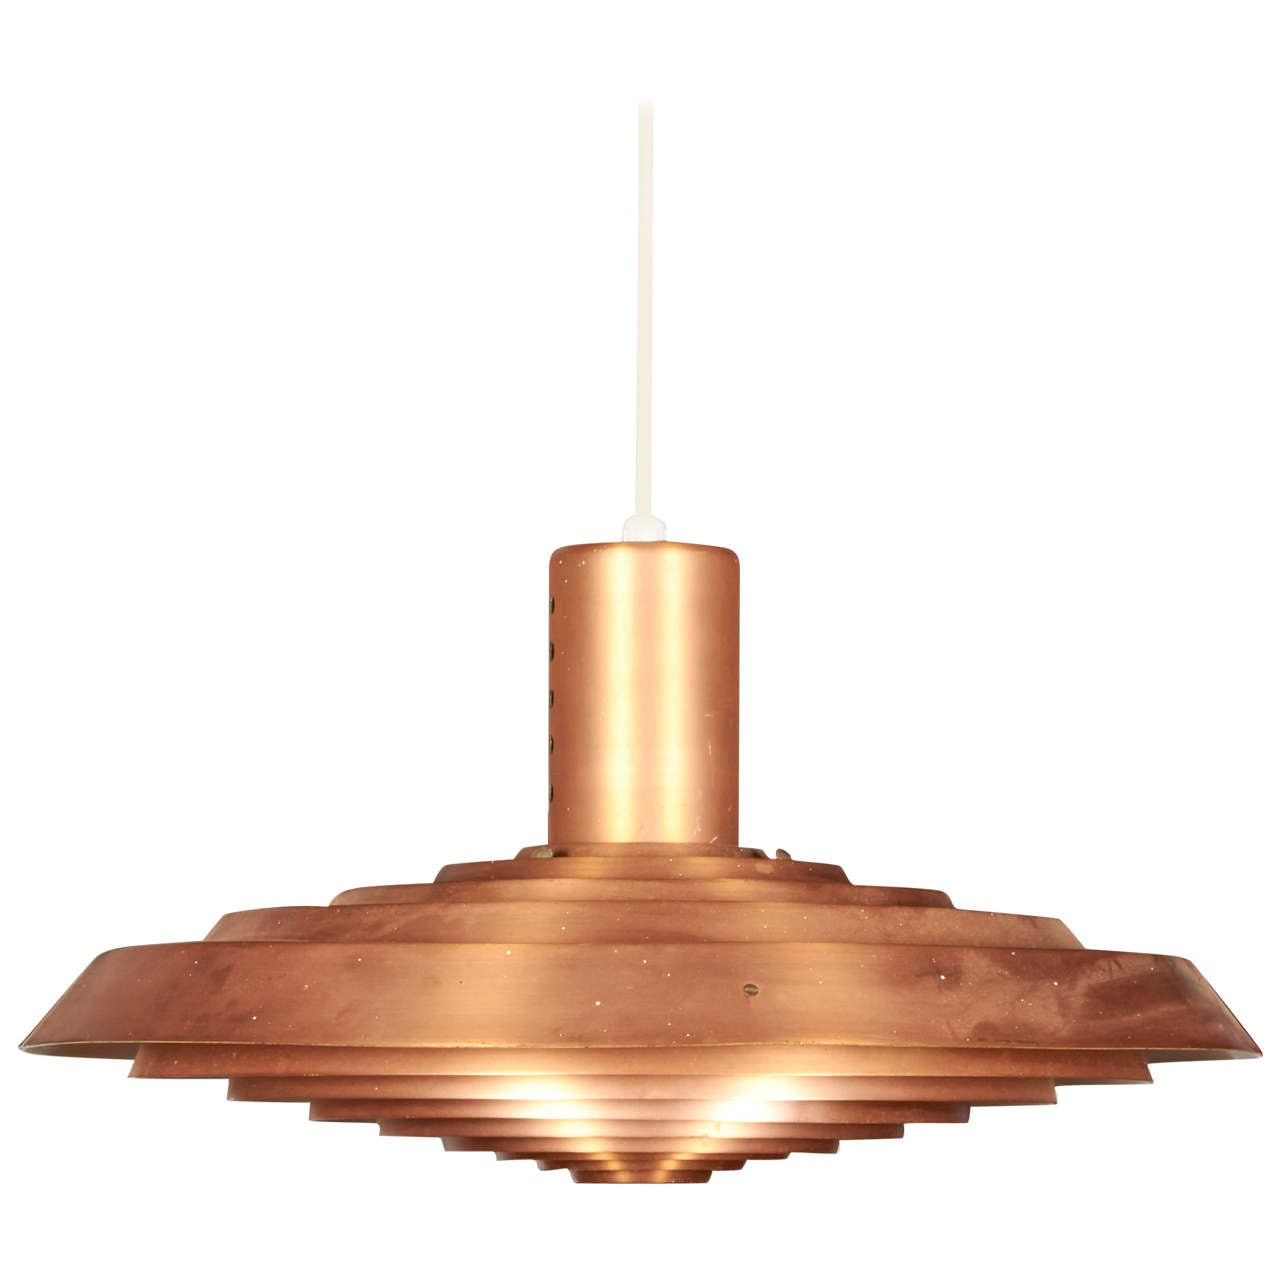 Pavillion Pendant Lamp in Copper by Poul Henningsen 1